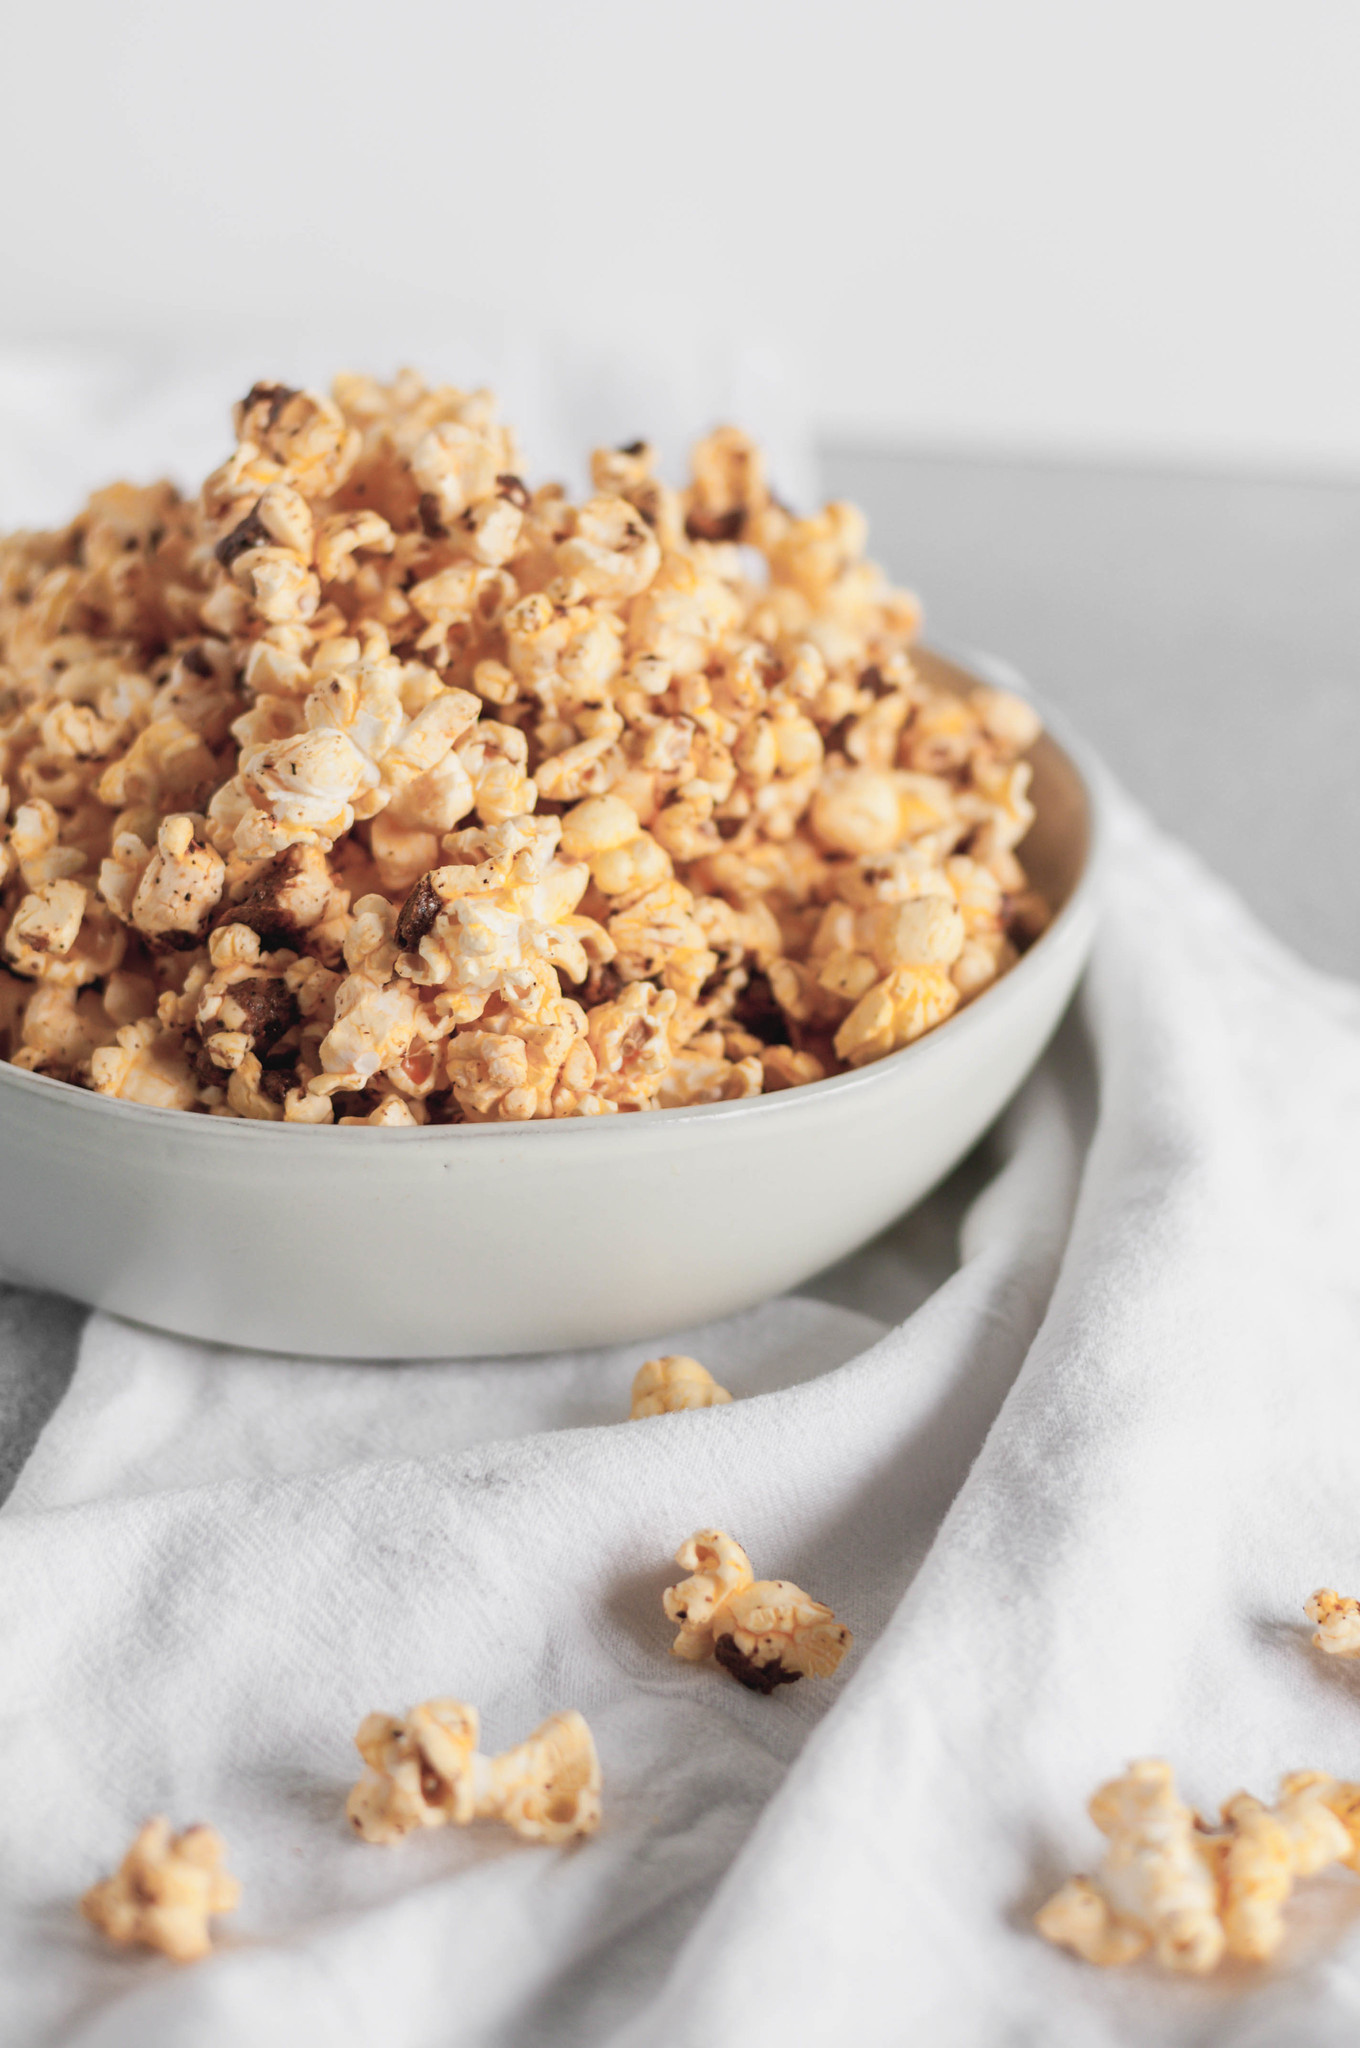 BBQ Spiced Popcorn is sweet and spicy and utterly addicting. Great for game day, parties or gifting your friends and neighbors.